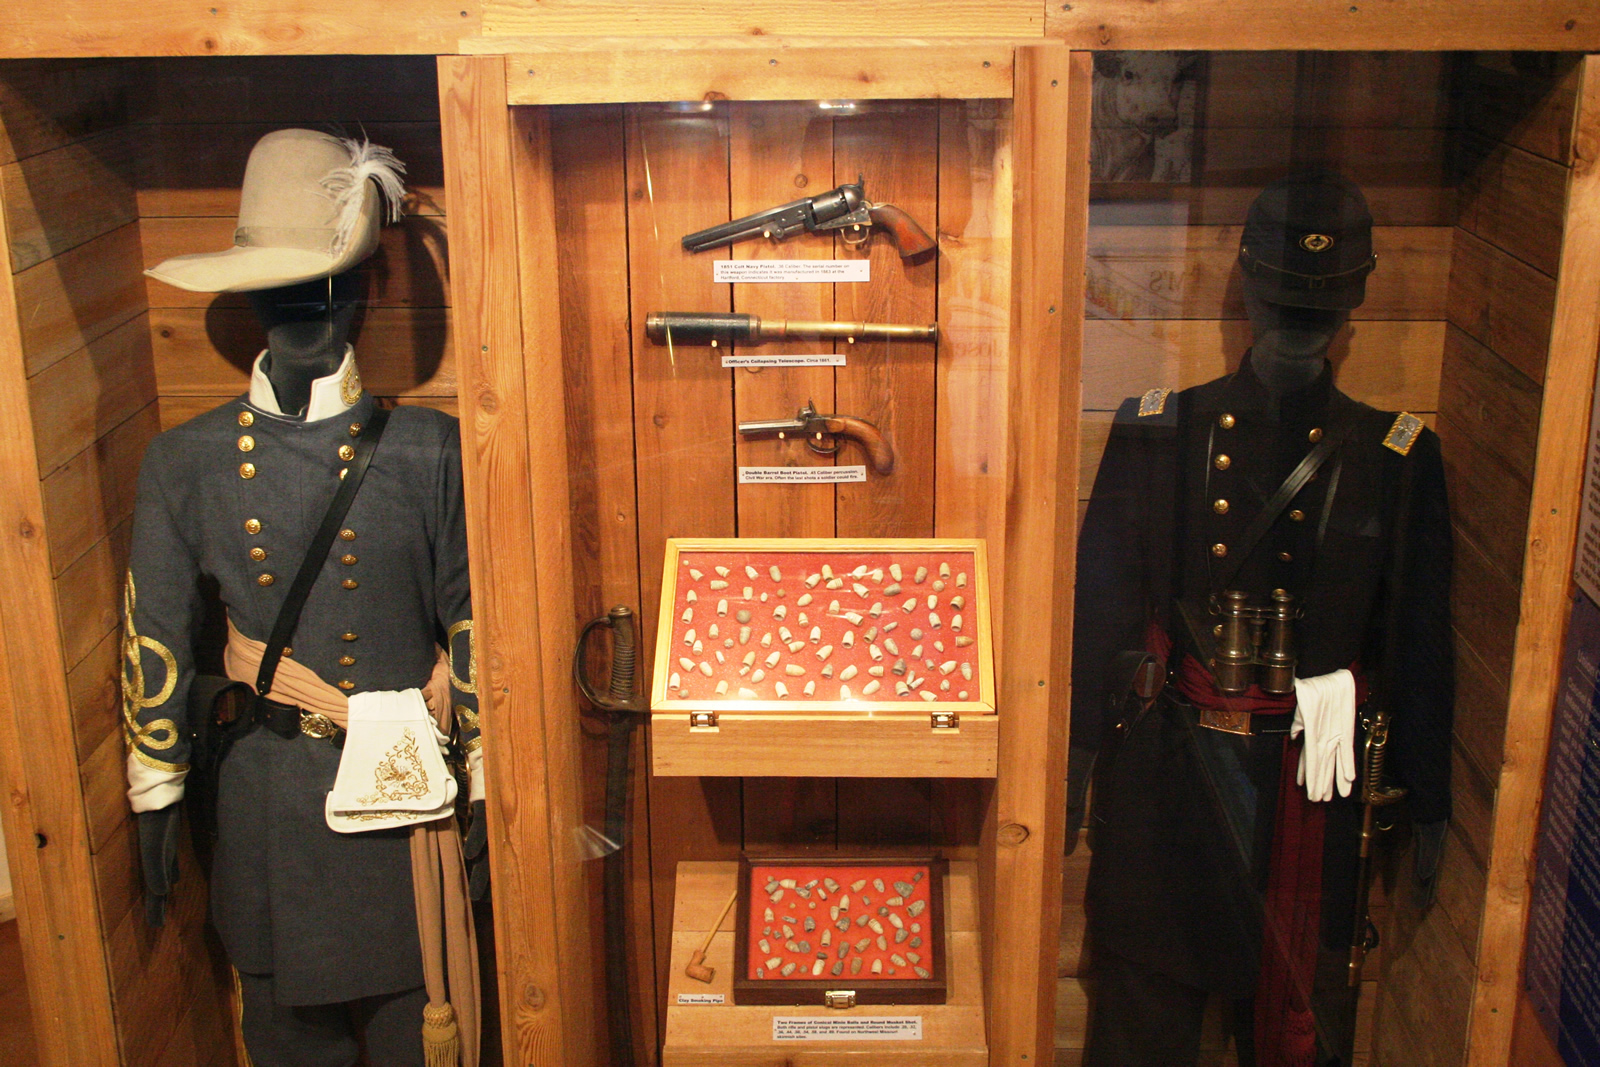 Civil War Uniforms in museum